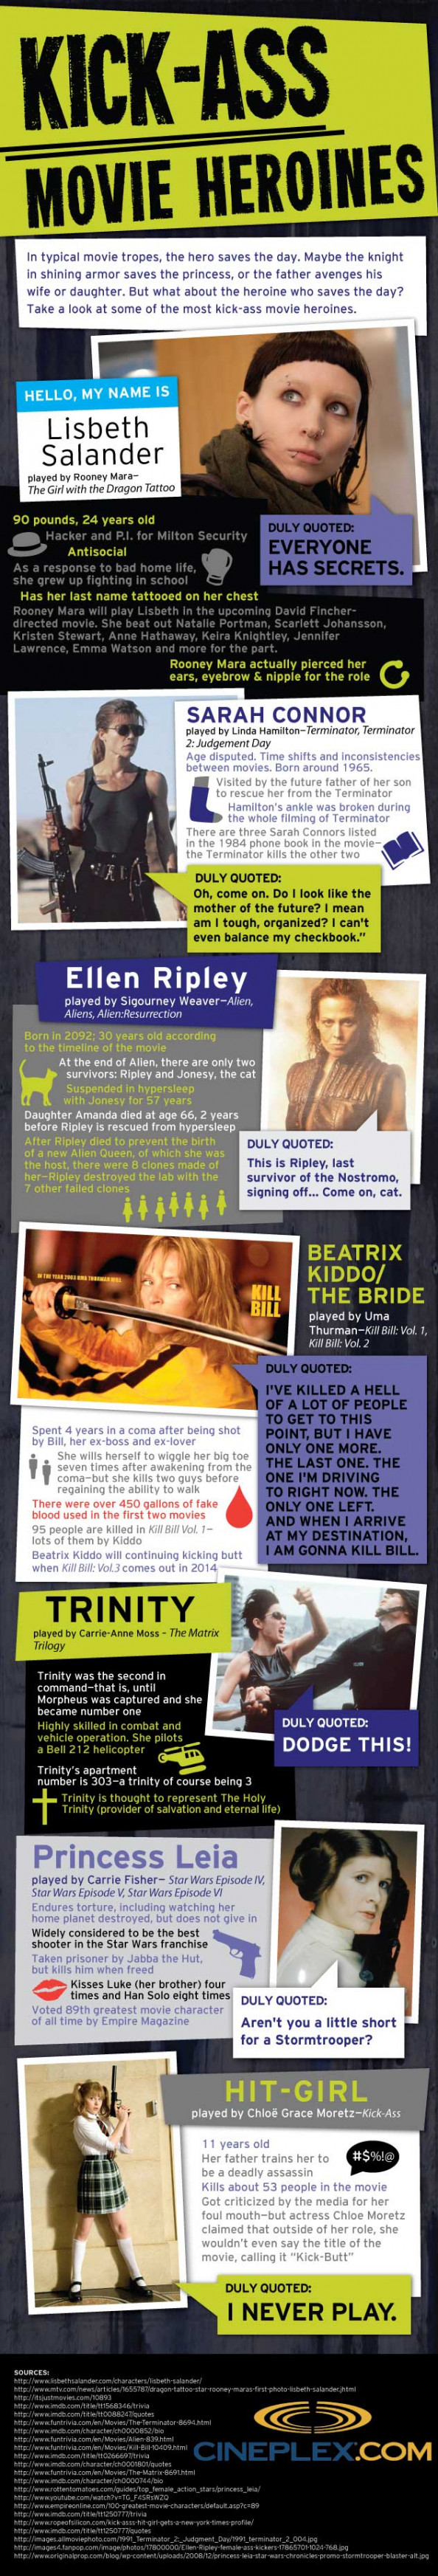 Kick-Ass Movie Heroines  Infographic